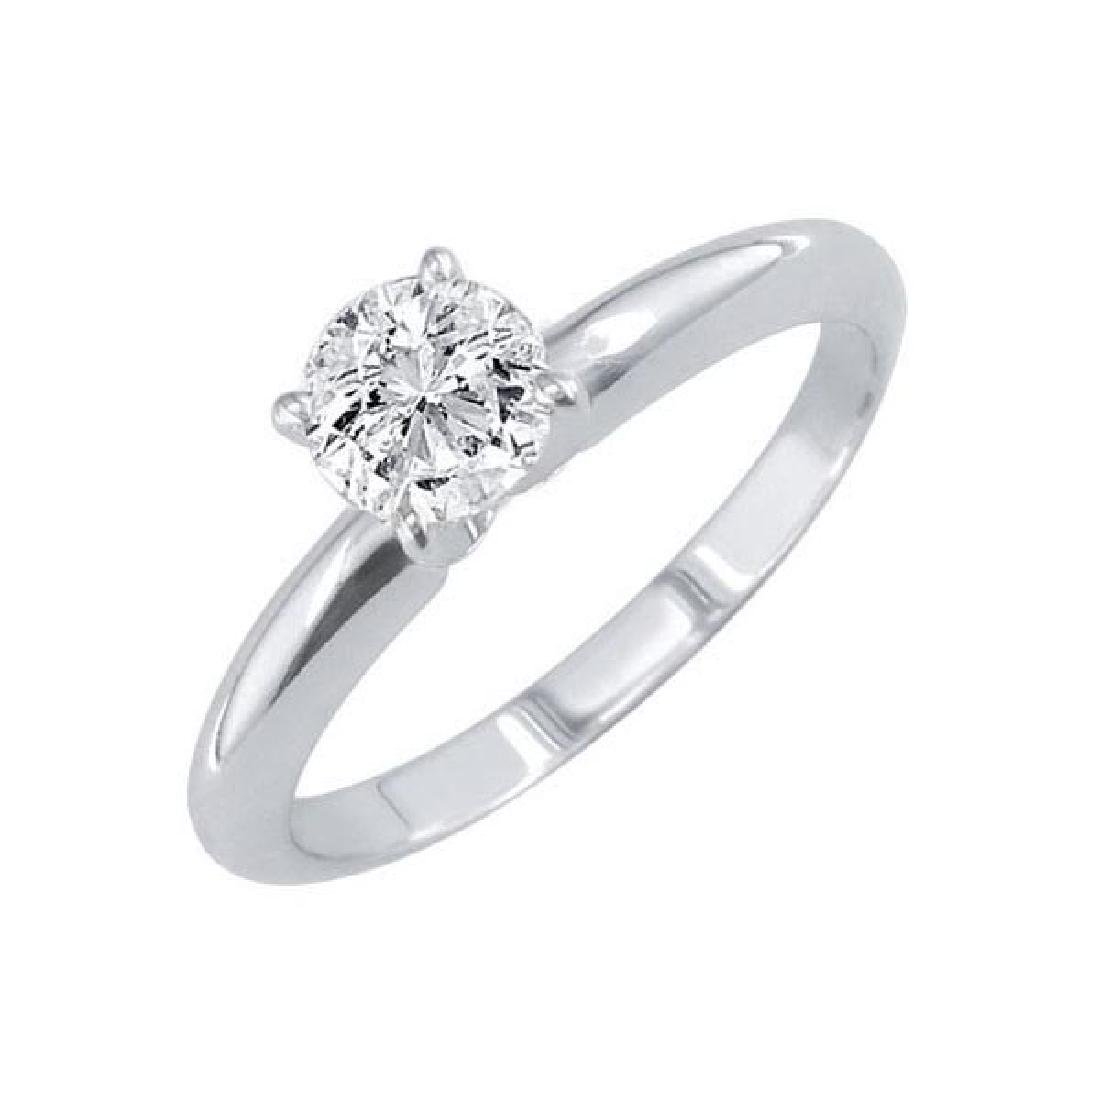 Certified 0.72 CTW Round Diamond Solitaire 14k Ring E/S